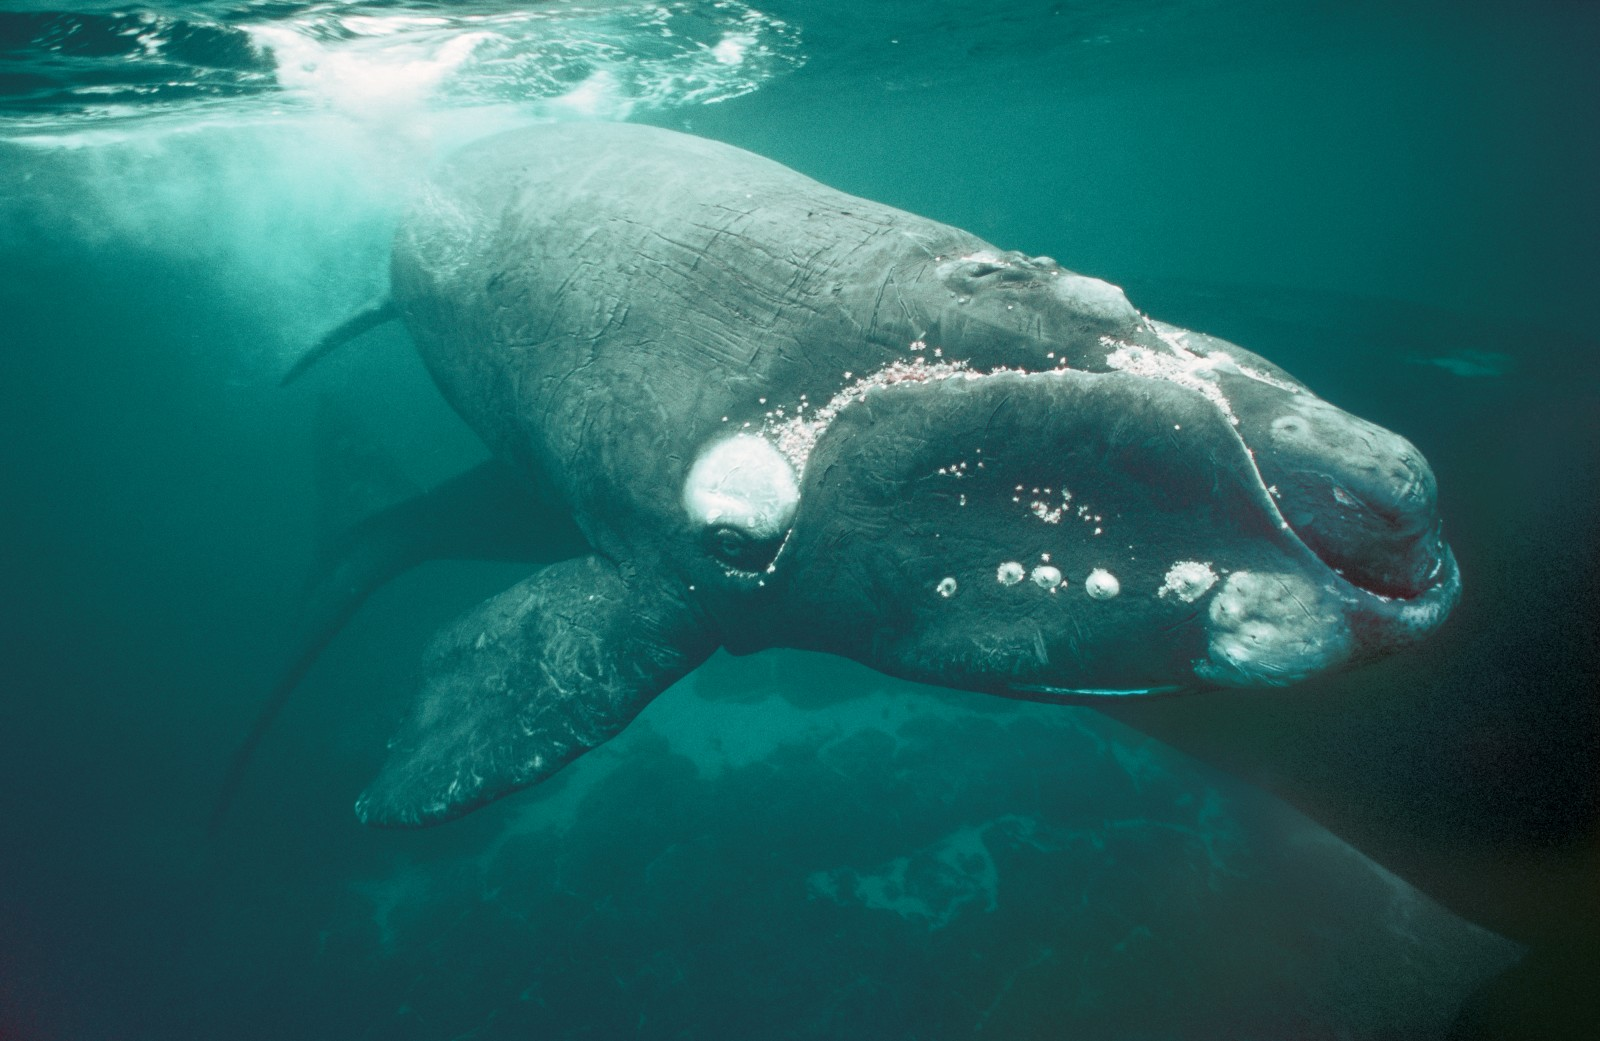 This right whale calf still has the wrinkled skin of the newborn, and also the inquisitiveness: it sawm within half a metre of the photographer. Calves are six metres long when born, and put on weight rapidly as they guzzle the protein-rich milk of their mother. Right whale pregnancies last 12 months, and females typically calve every three to five years.